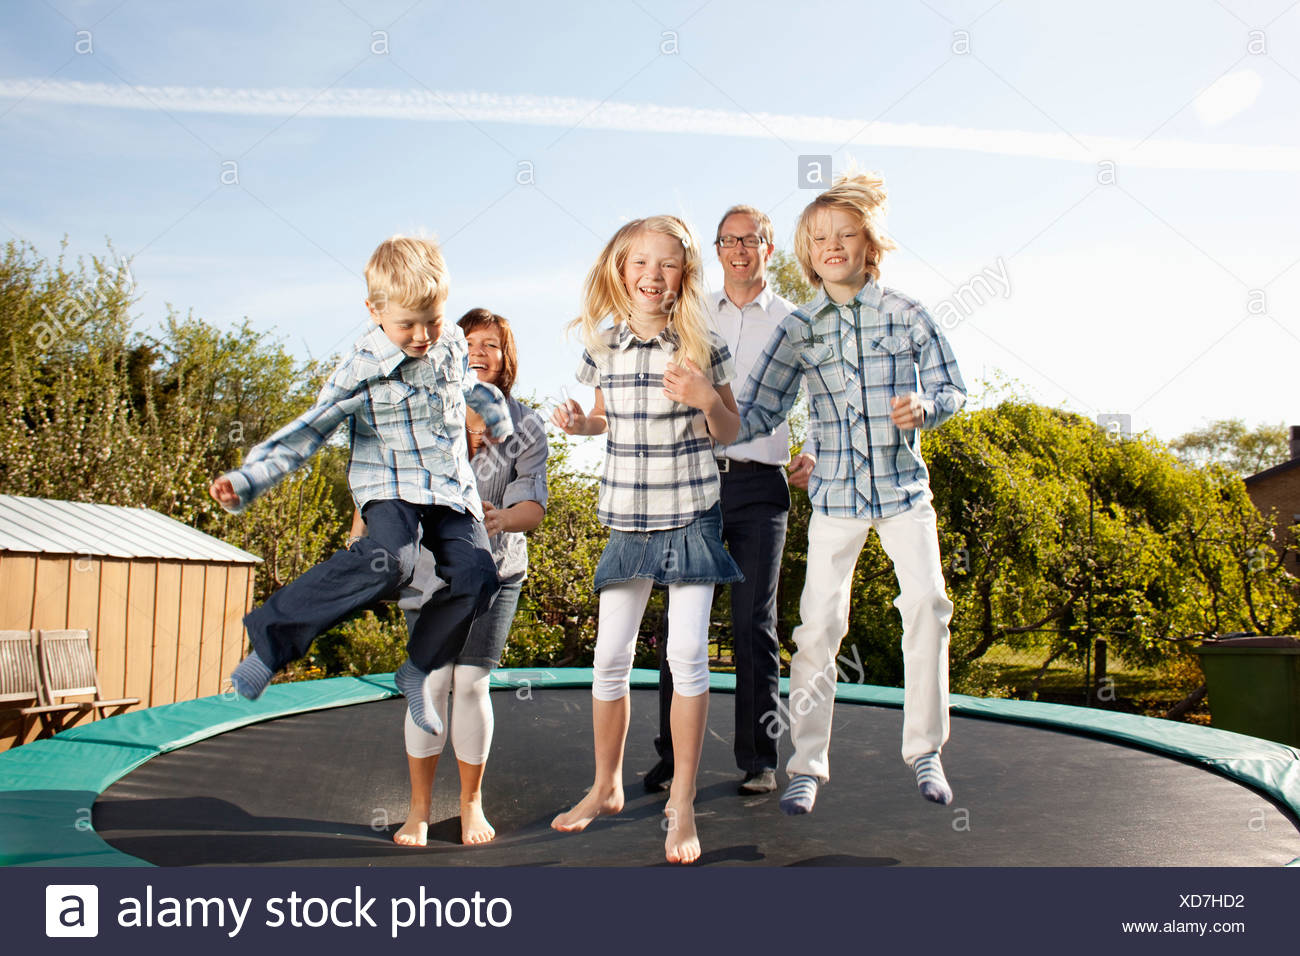 Family jumping - Stock Image